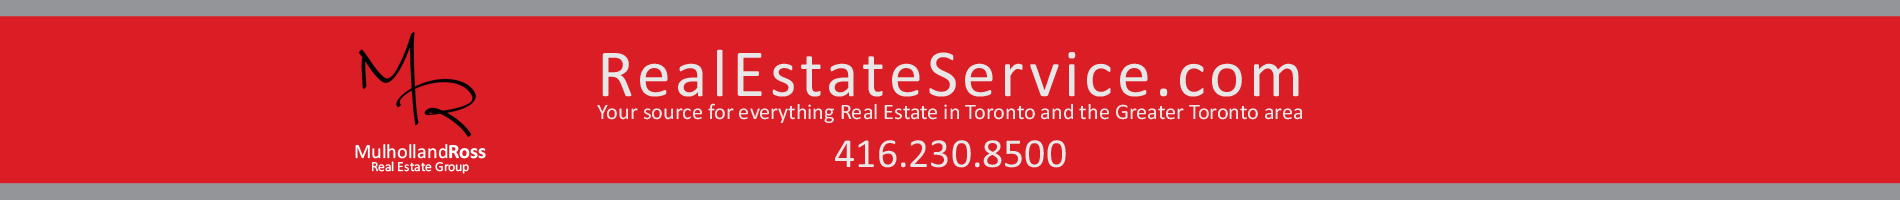 Toronto Real Estate | Homes for sale | Mulholland Ross Real Estate Group